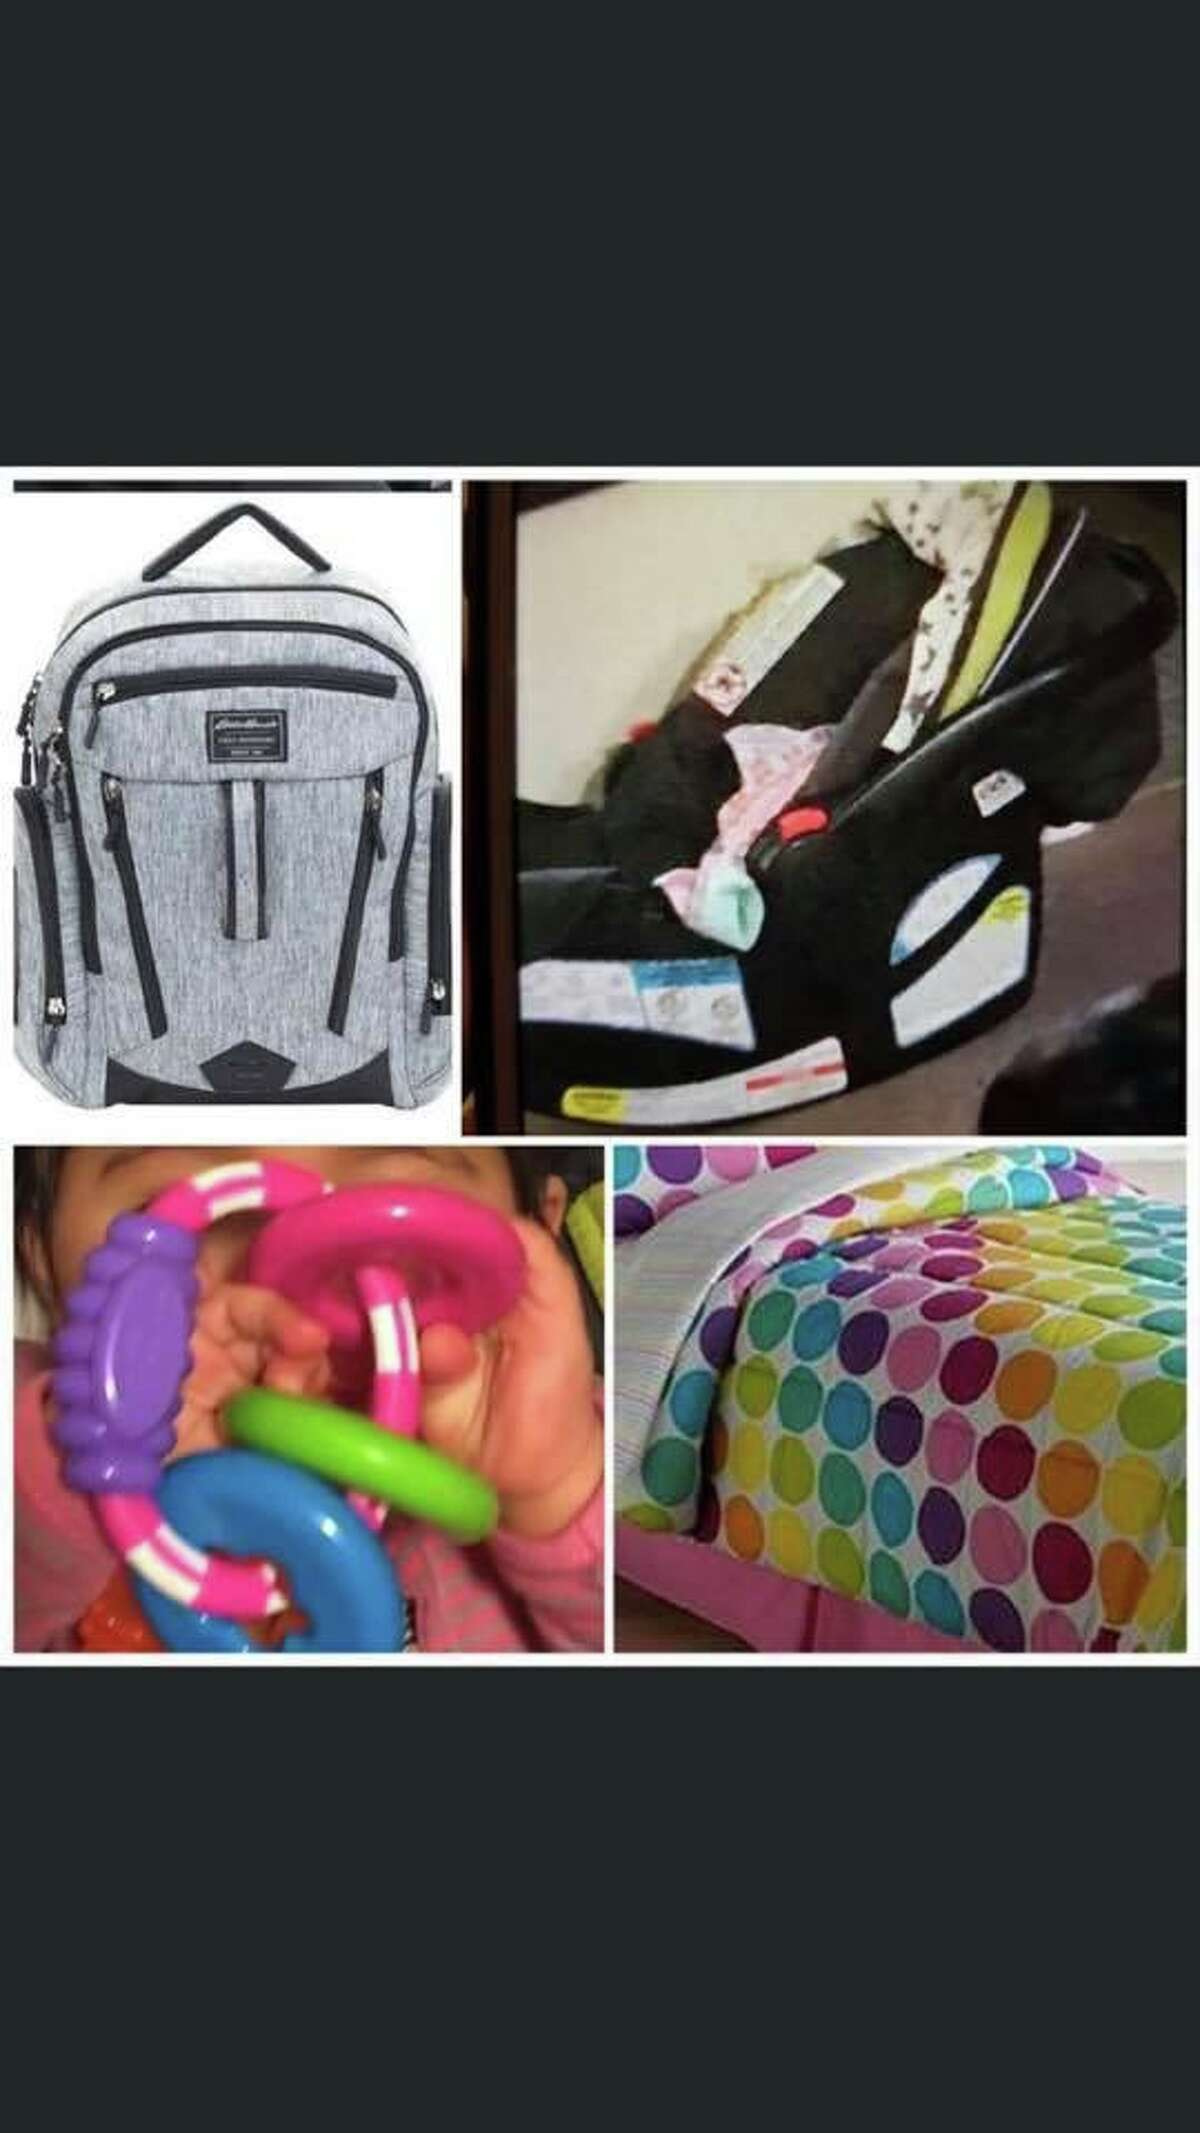 These four items an Eddie Bauer diaper bag, a Graco car seat, a teathing ring and a blanket were believed to be taken with Vanessa Morales when the Ansonia toddler went missing on Dec. 2, 2019. A $10,000 reward for information leading to her whereabouts has been offered. Anyone with information should call the Ansonia PD at 203-735-1885 or the FBI at 1-800-225-5324.